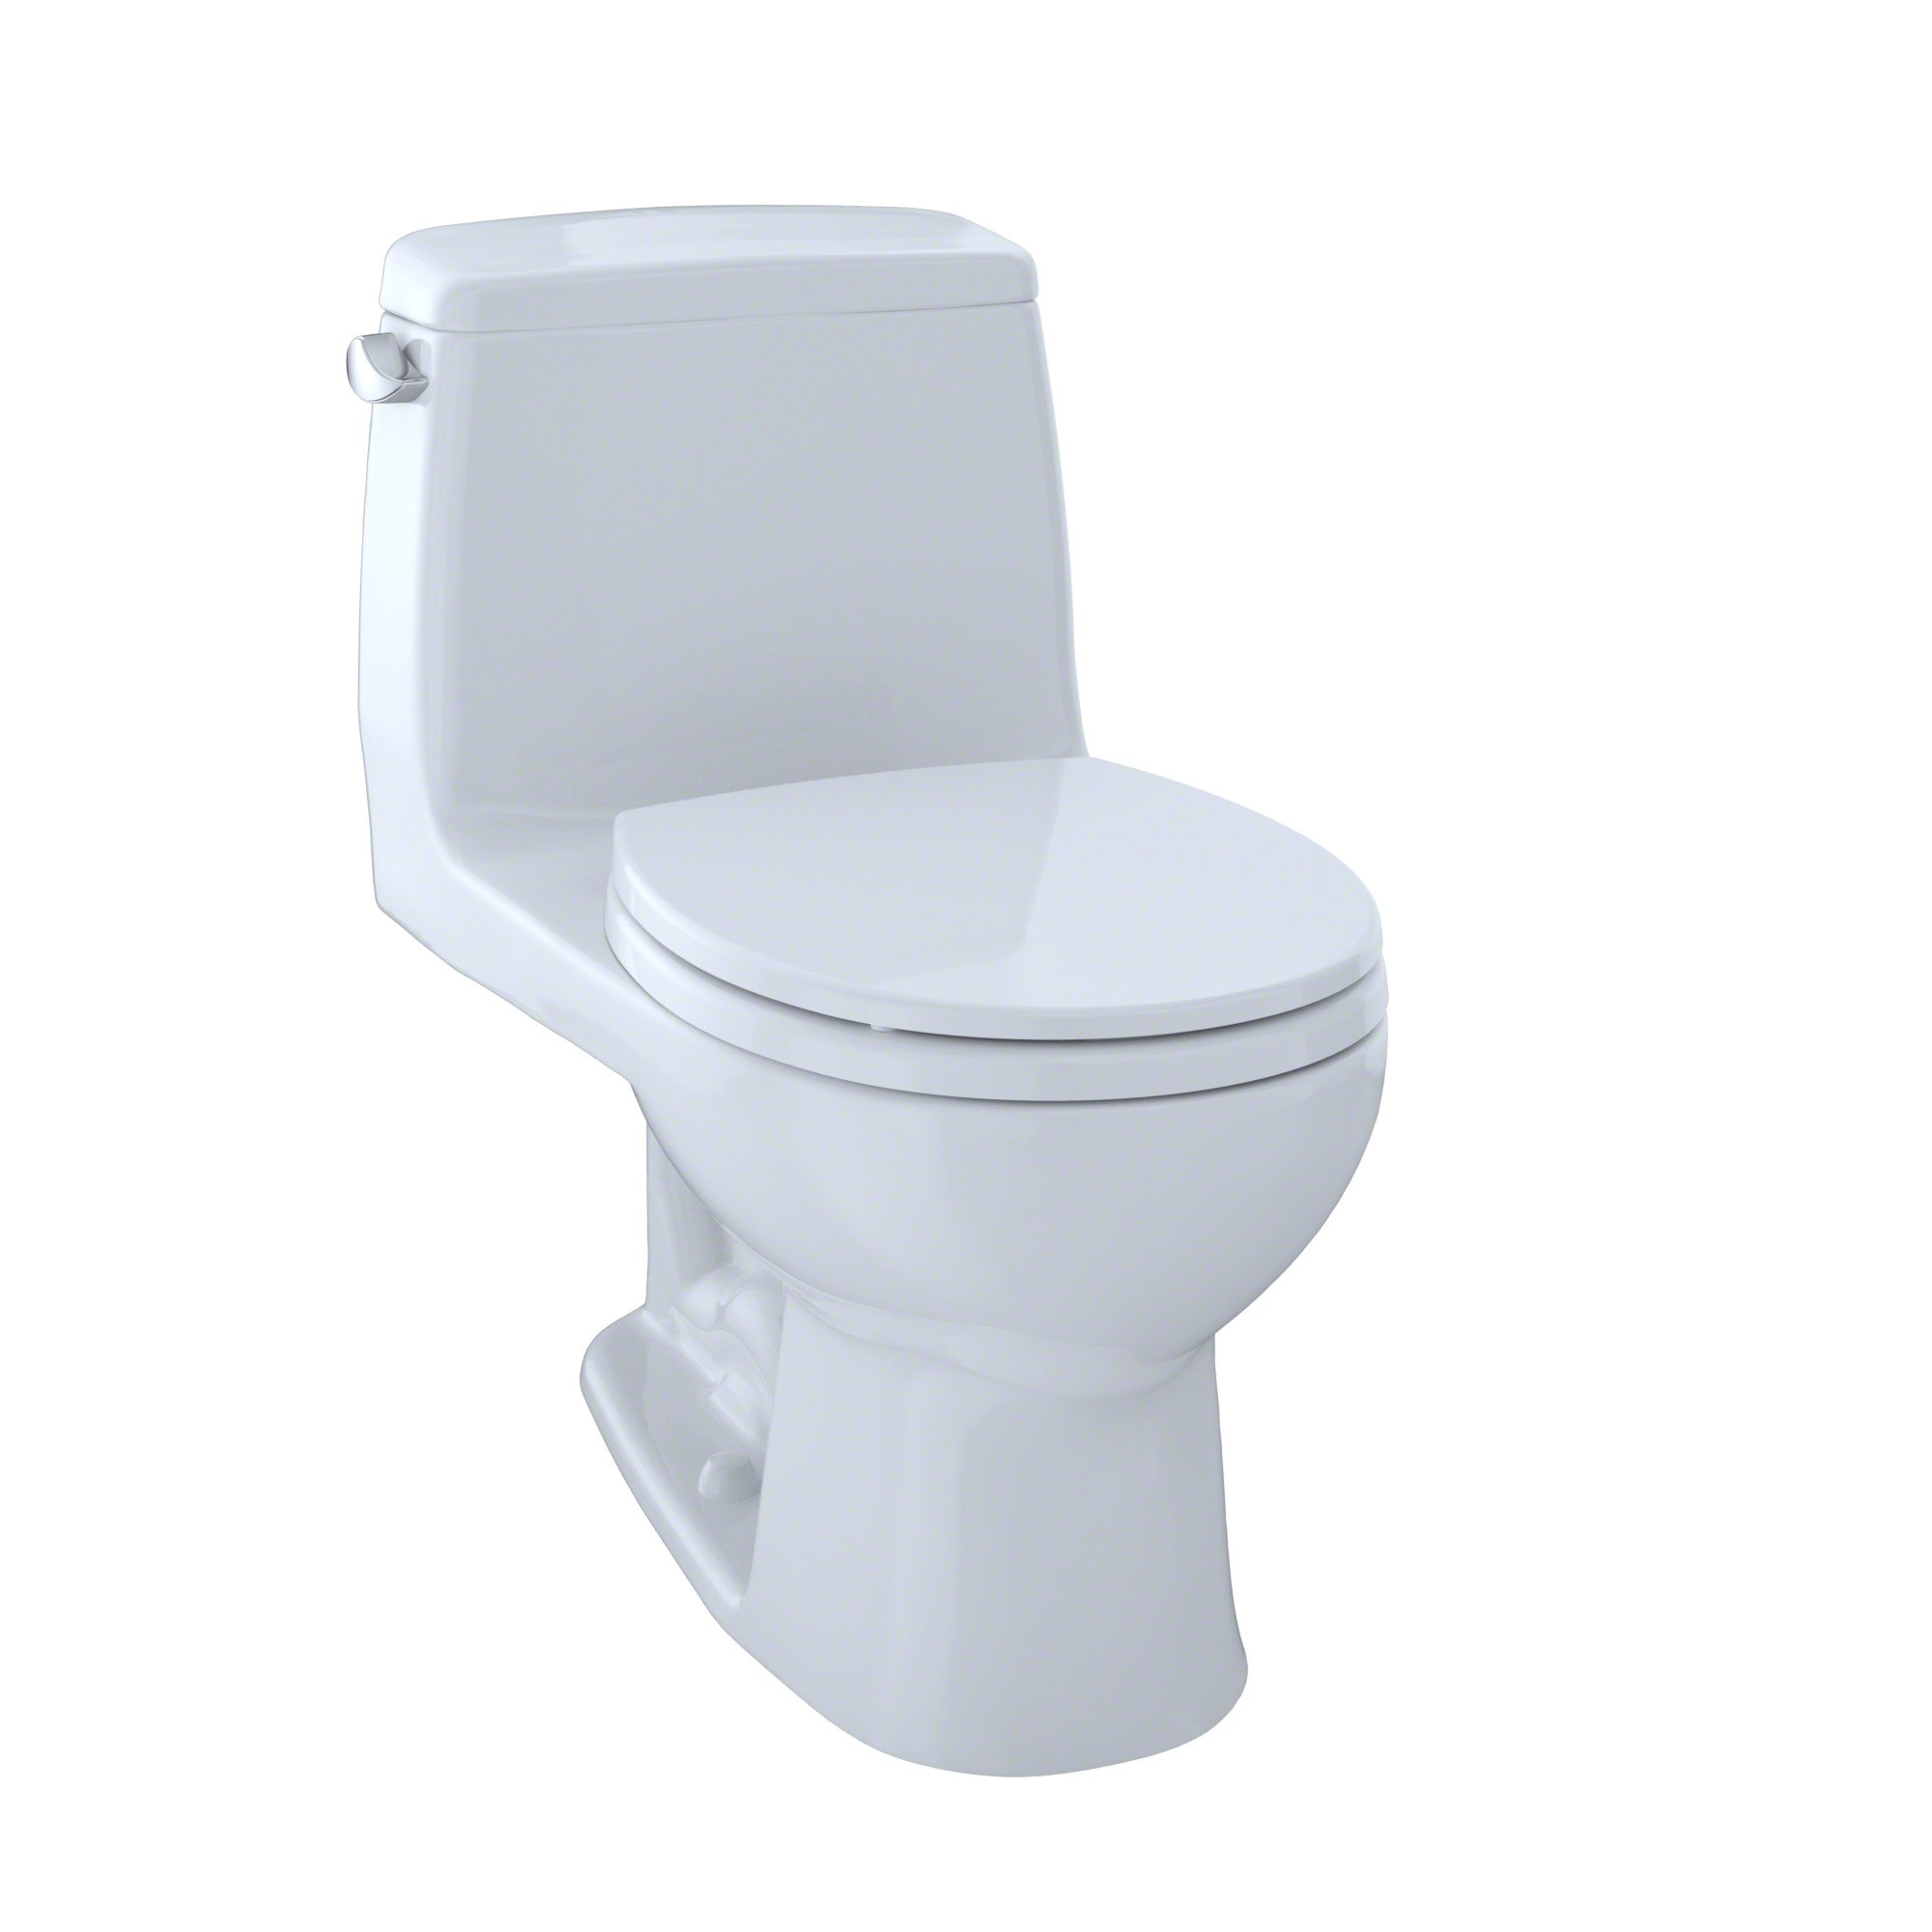 TOTO MS853113#01 Ultimate Round One Piece Toilet, Cotton White by TOTO